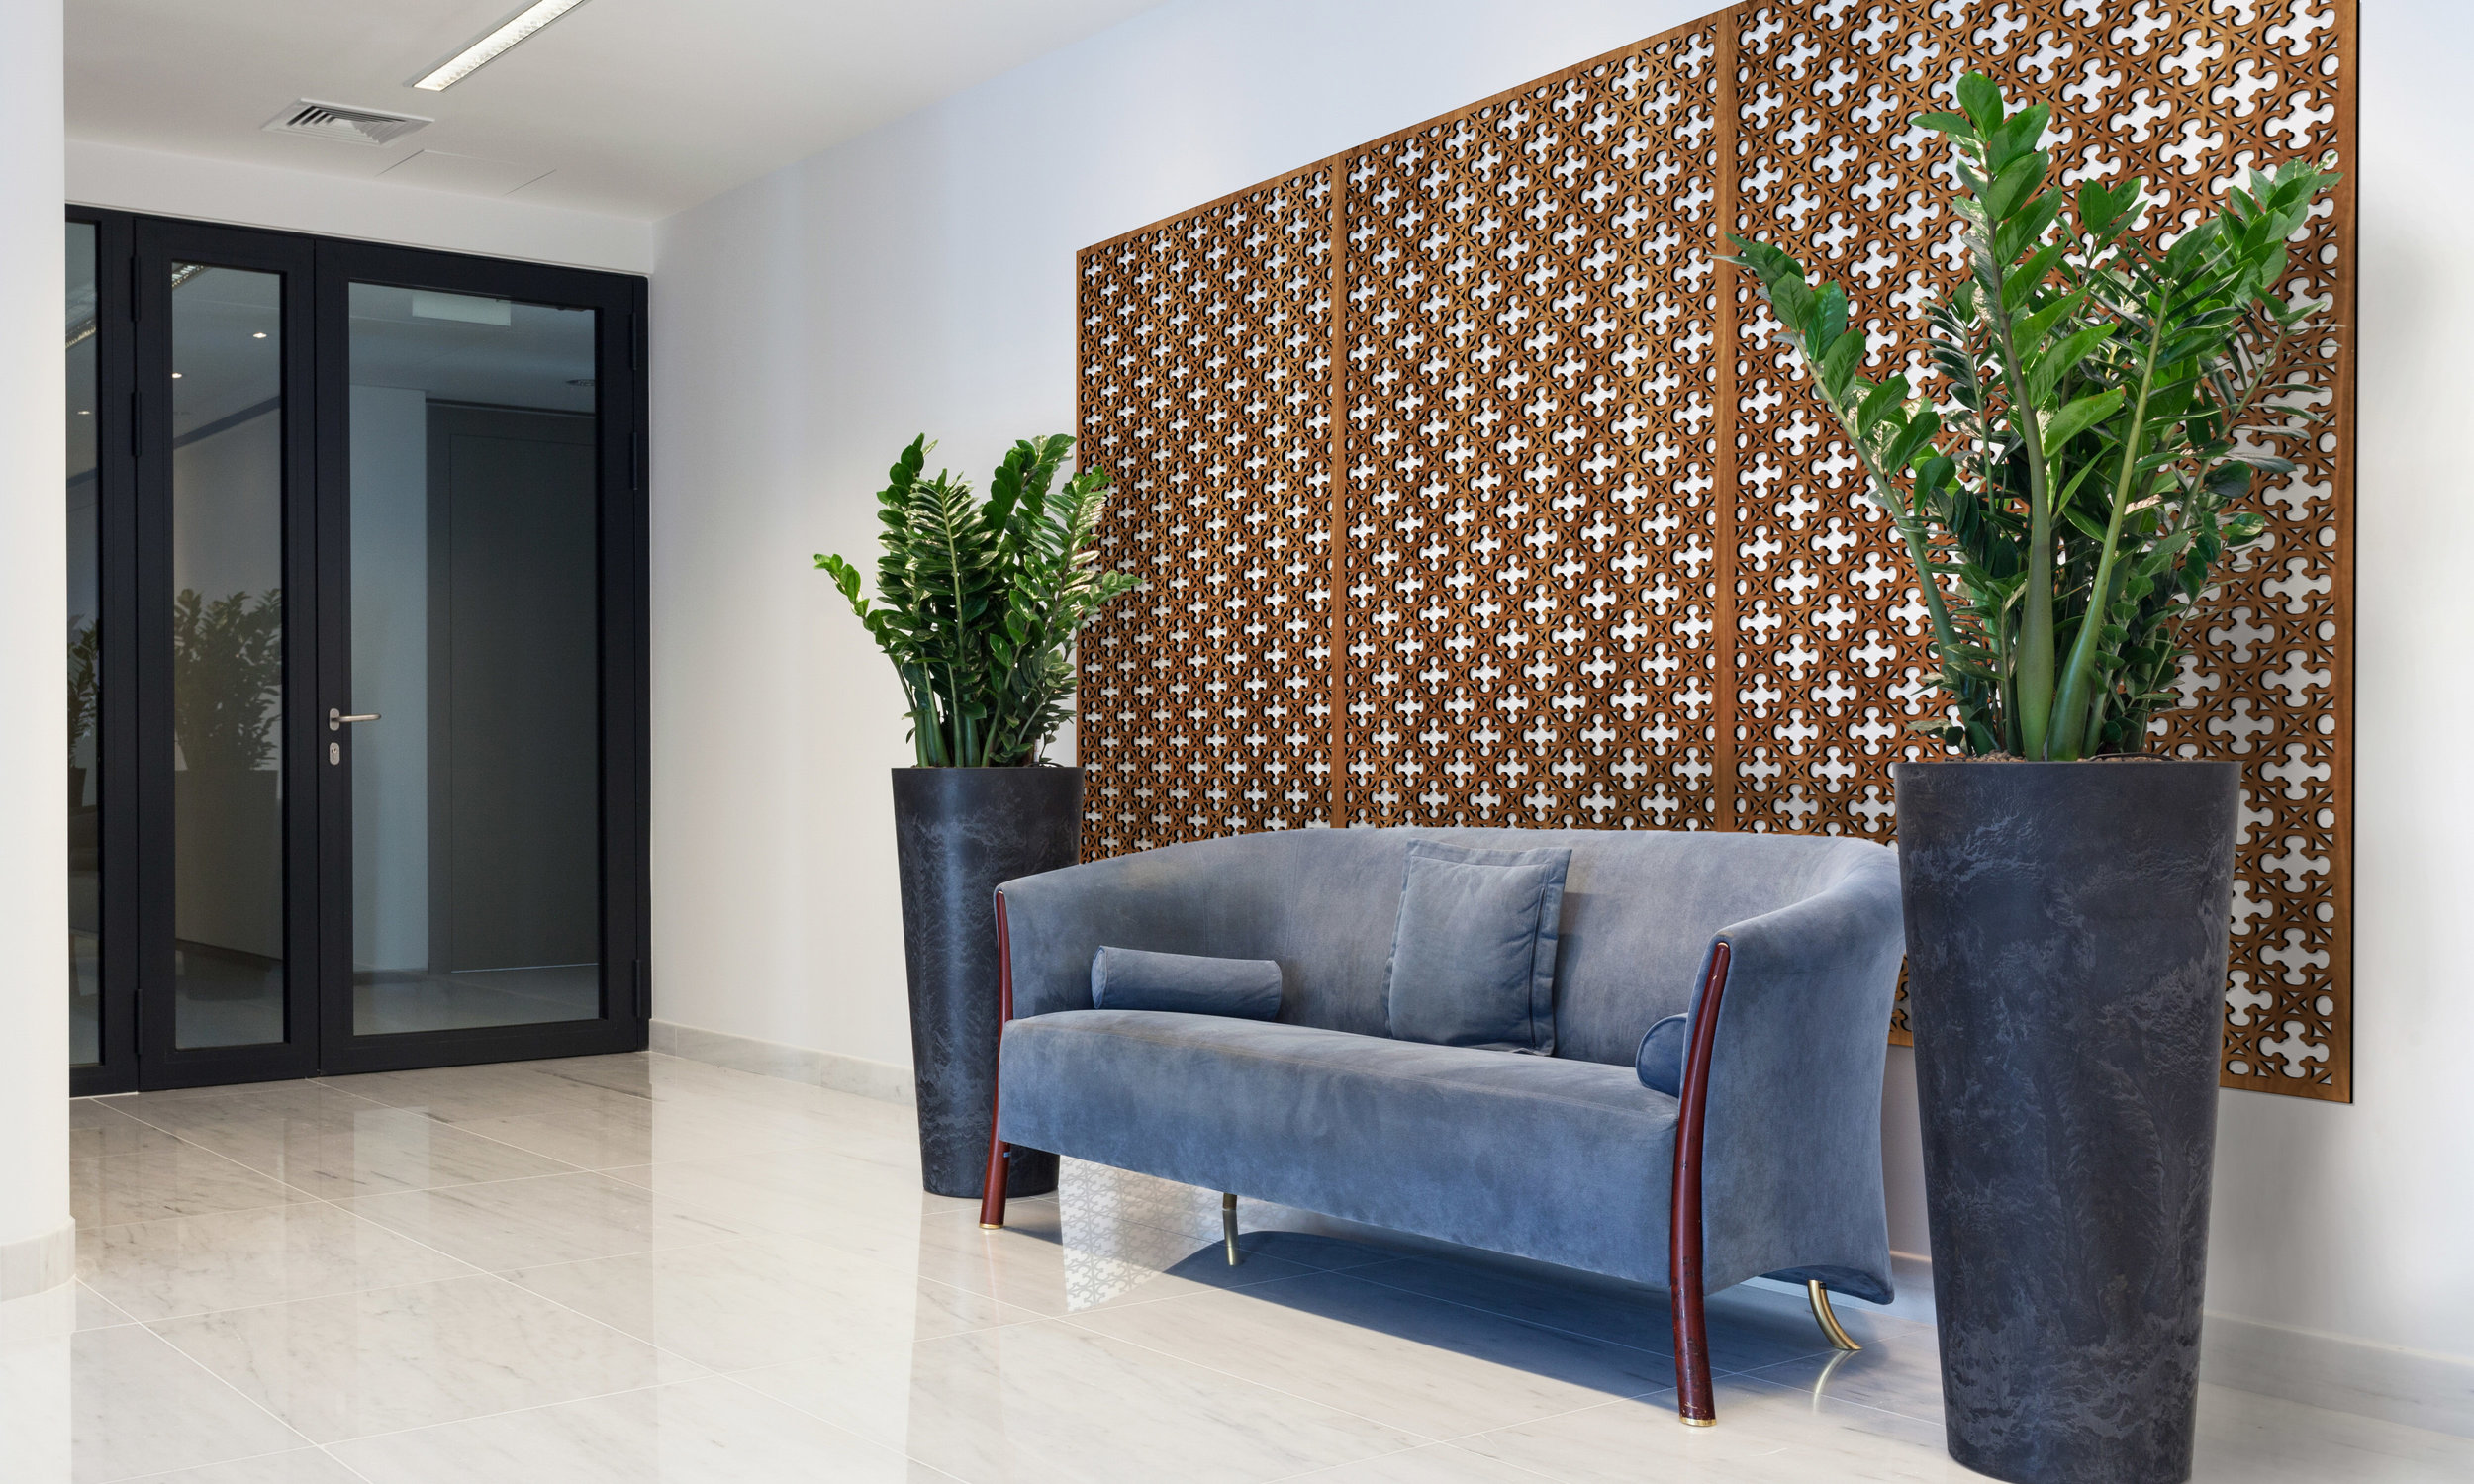 Installation Rendering A   Gothic Grille decorative office wall panel - shown in Cherry